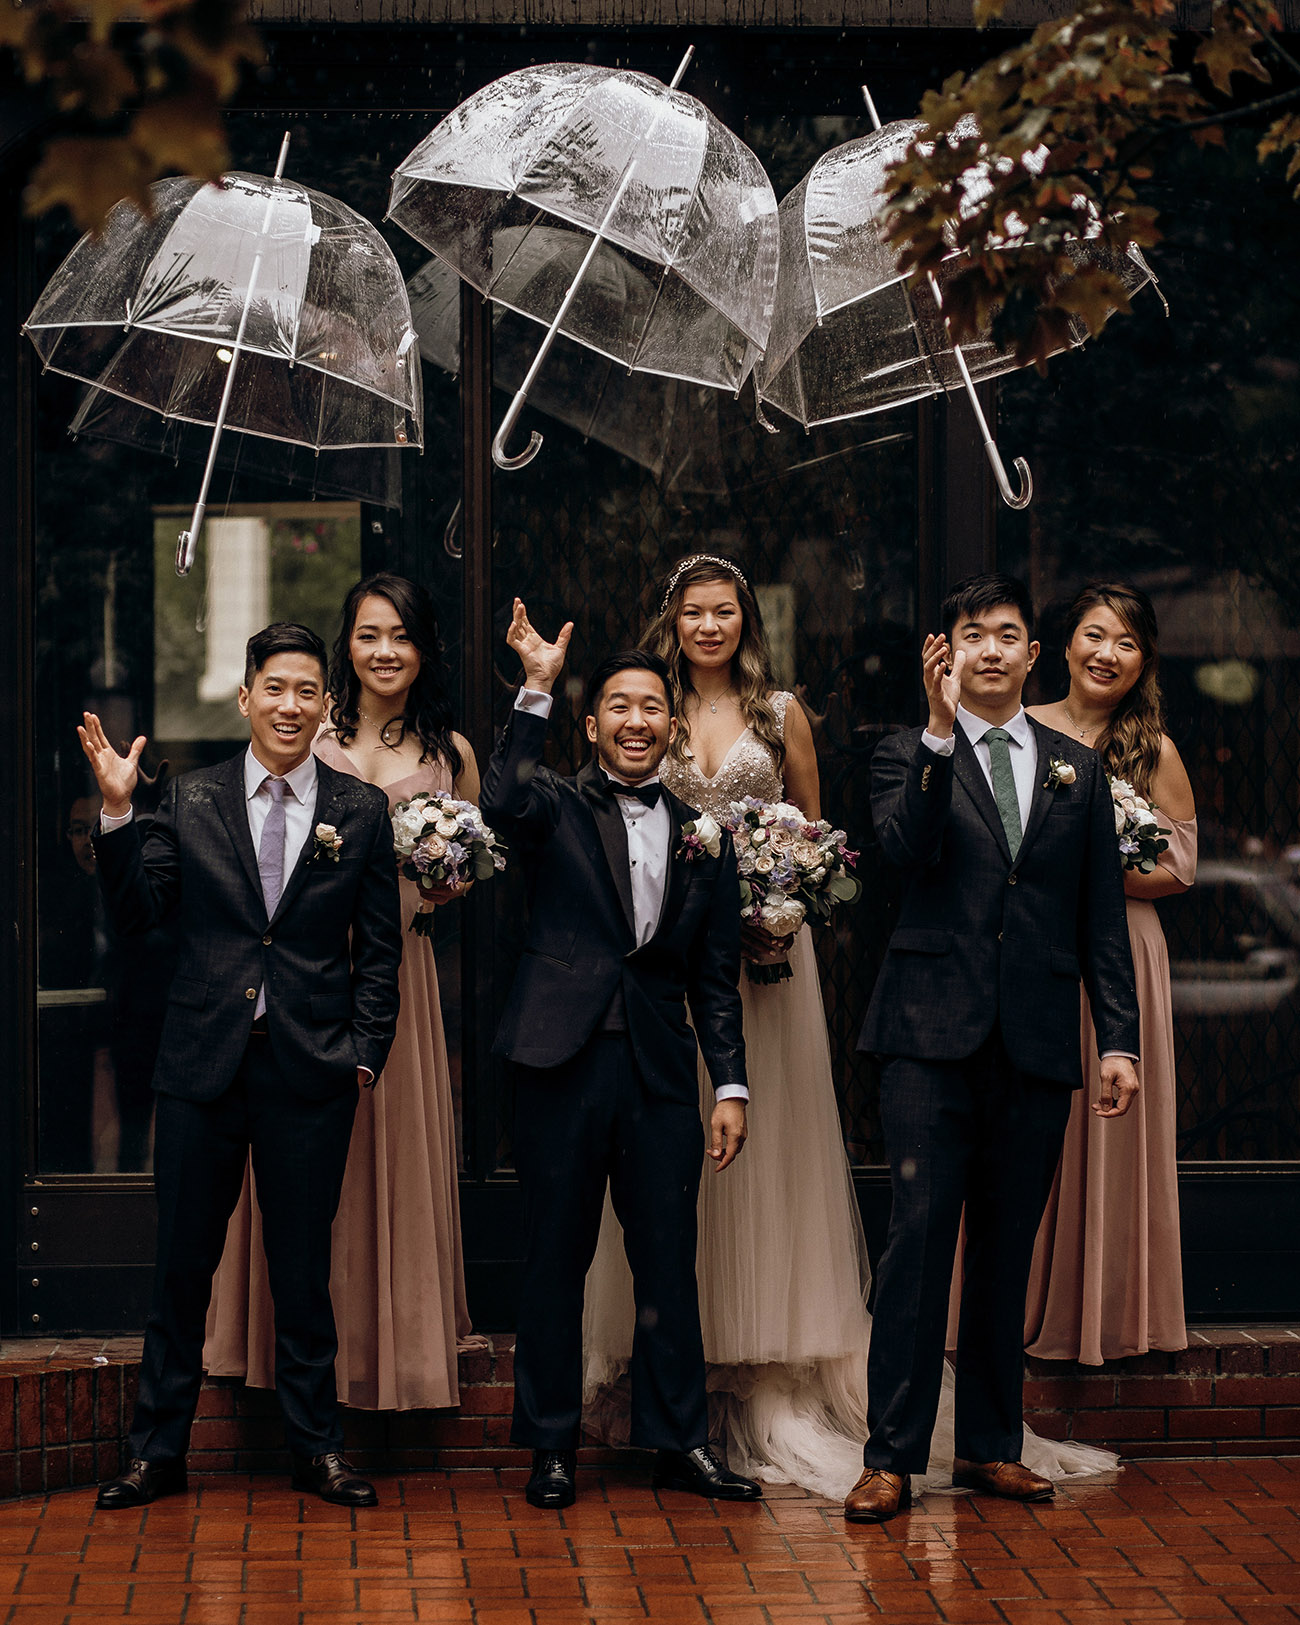 rainy wedding photo idea